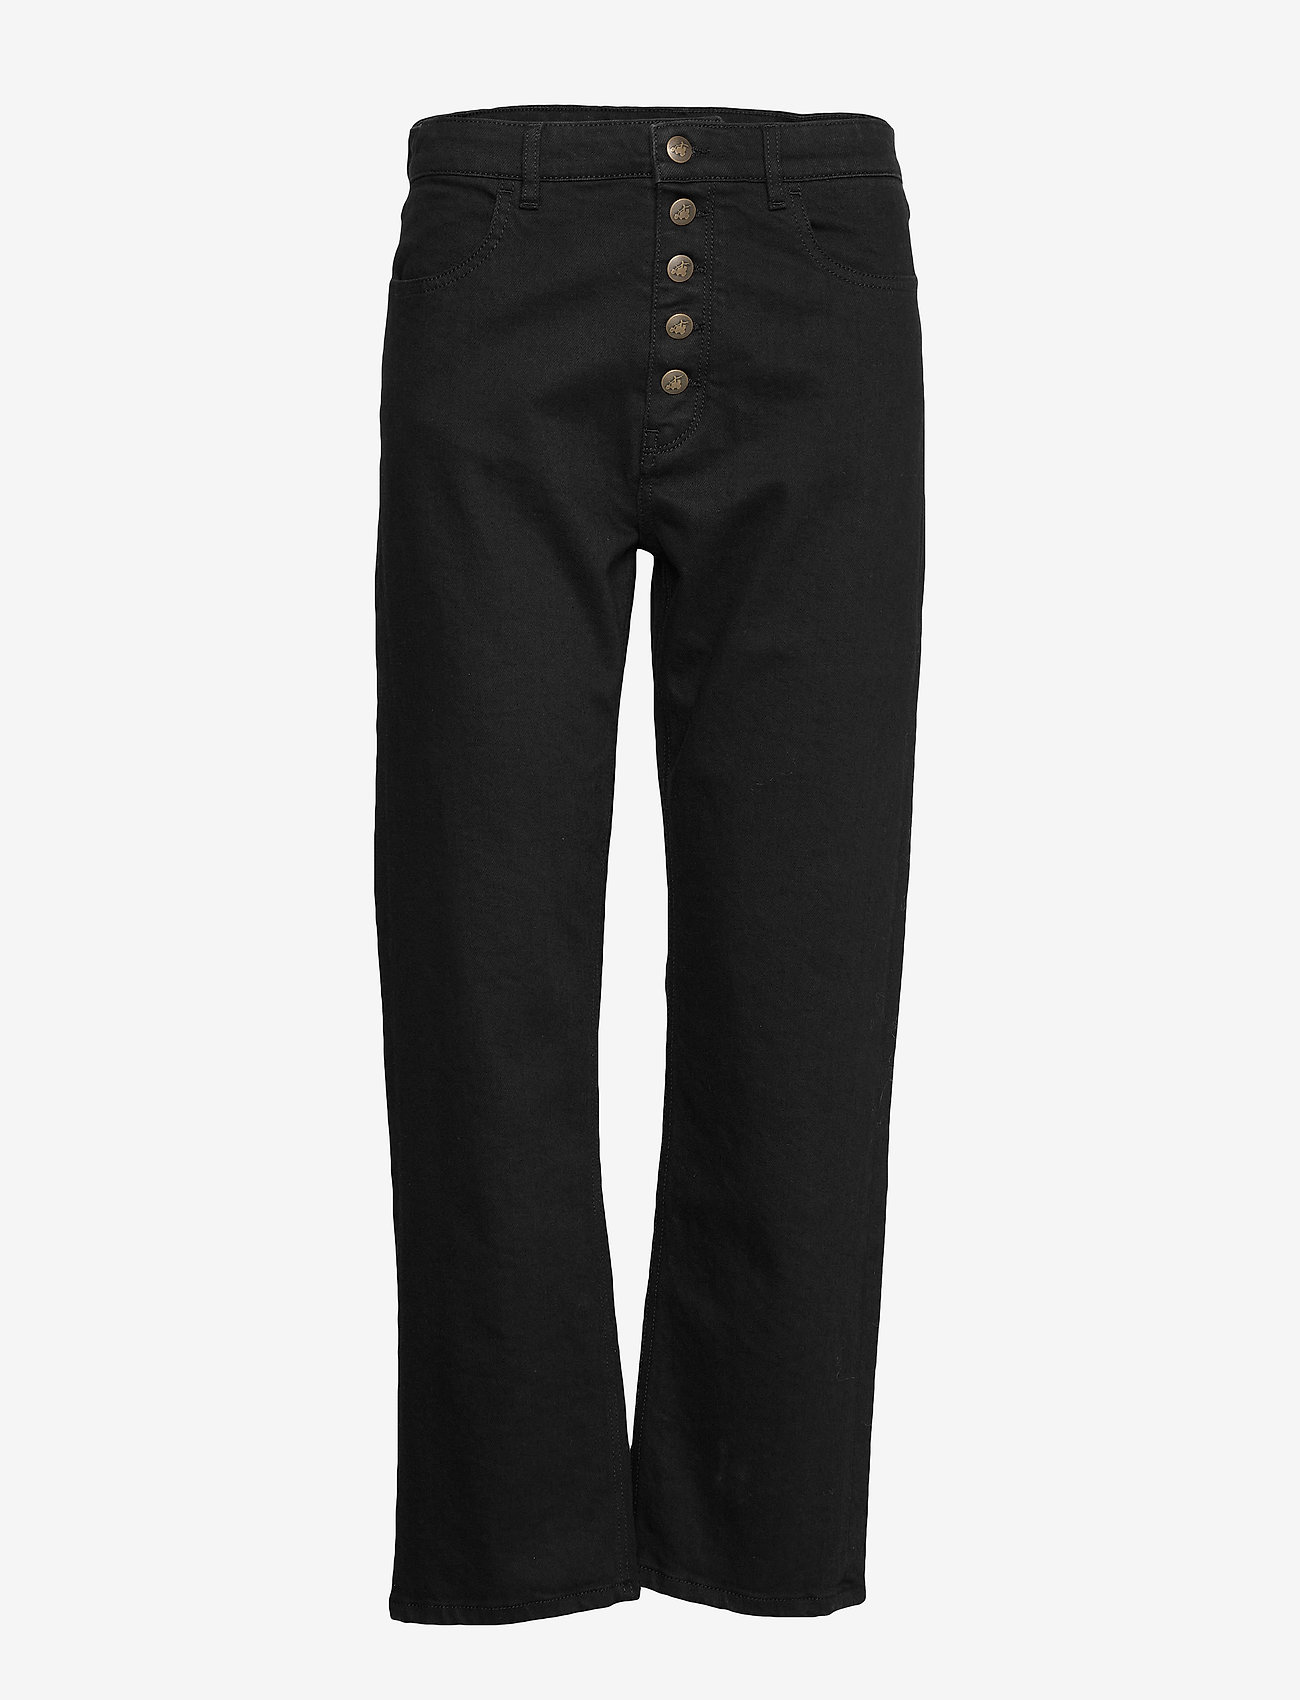 Edith Jeans (Black) - By Malina X6DIby